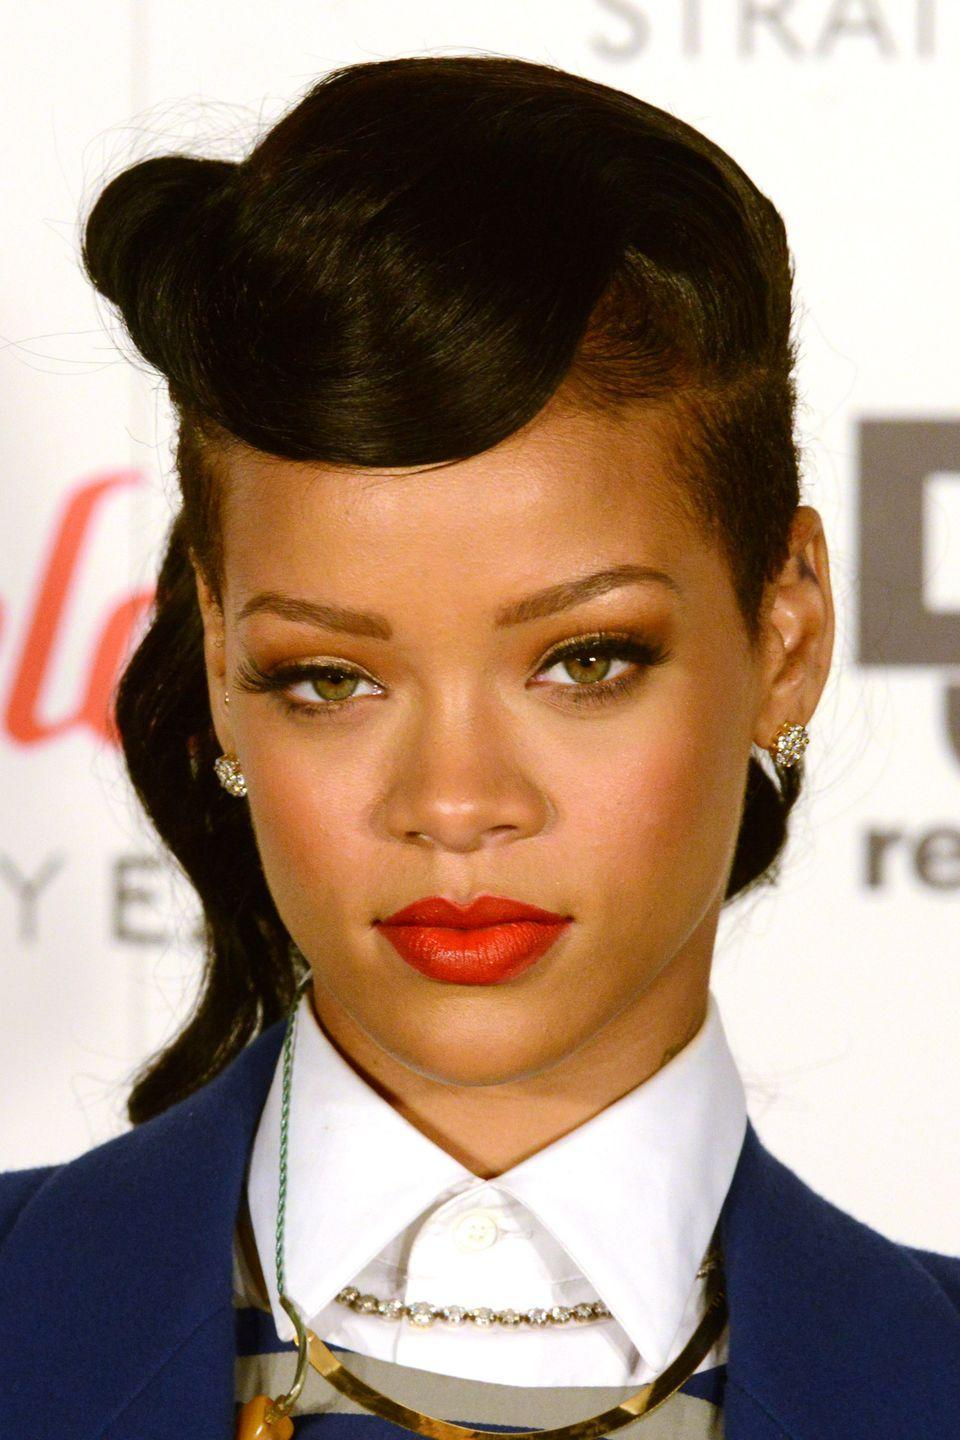 <p>Retro styles like this 1940s wave prove timeless on the singer. Rihanna wears her hair wavy and swept up to frame her face. </p>